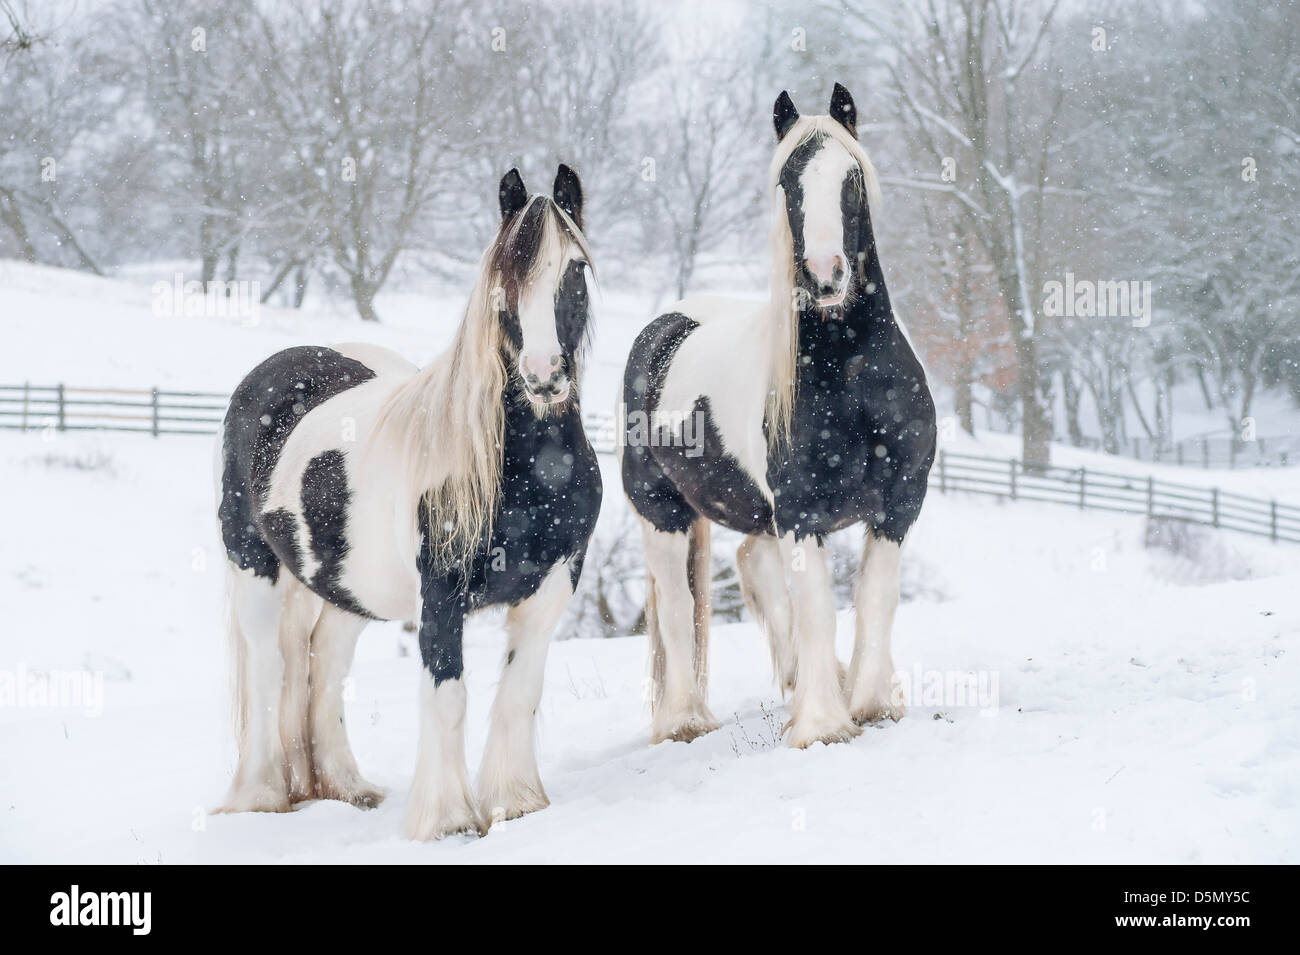 Pair of Gypsy Vanner Horse mares in snow - Stock Image